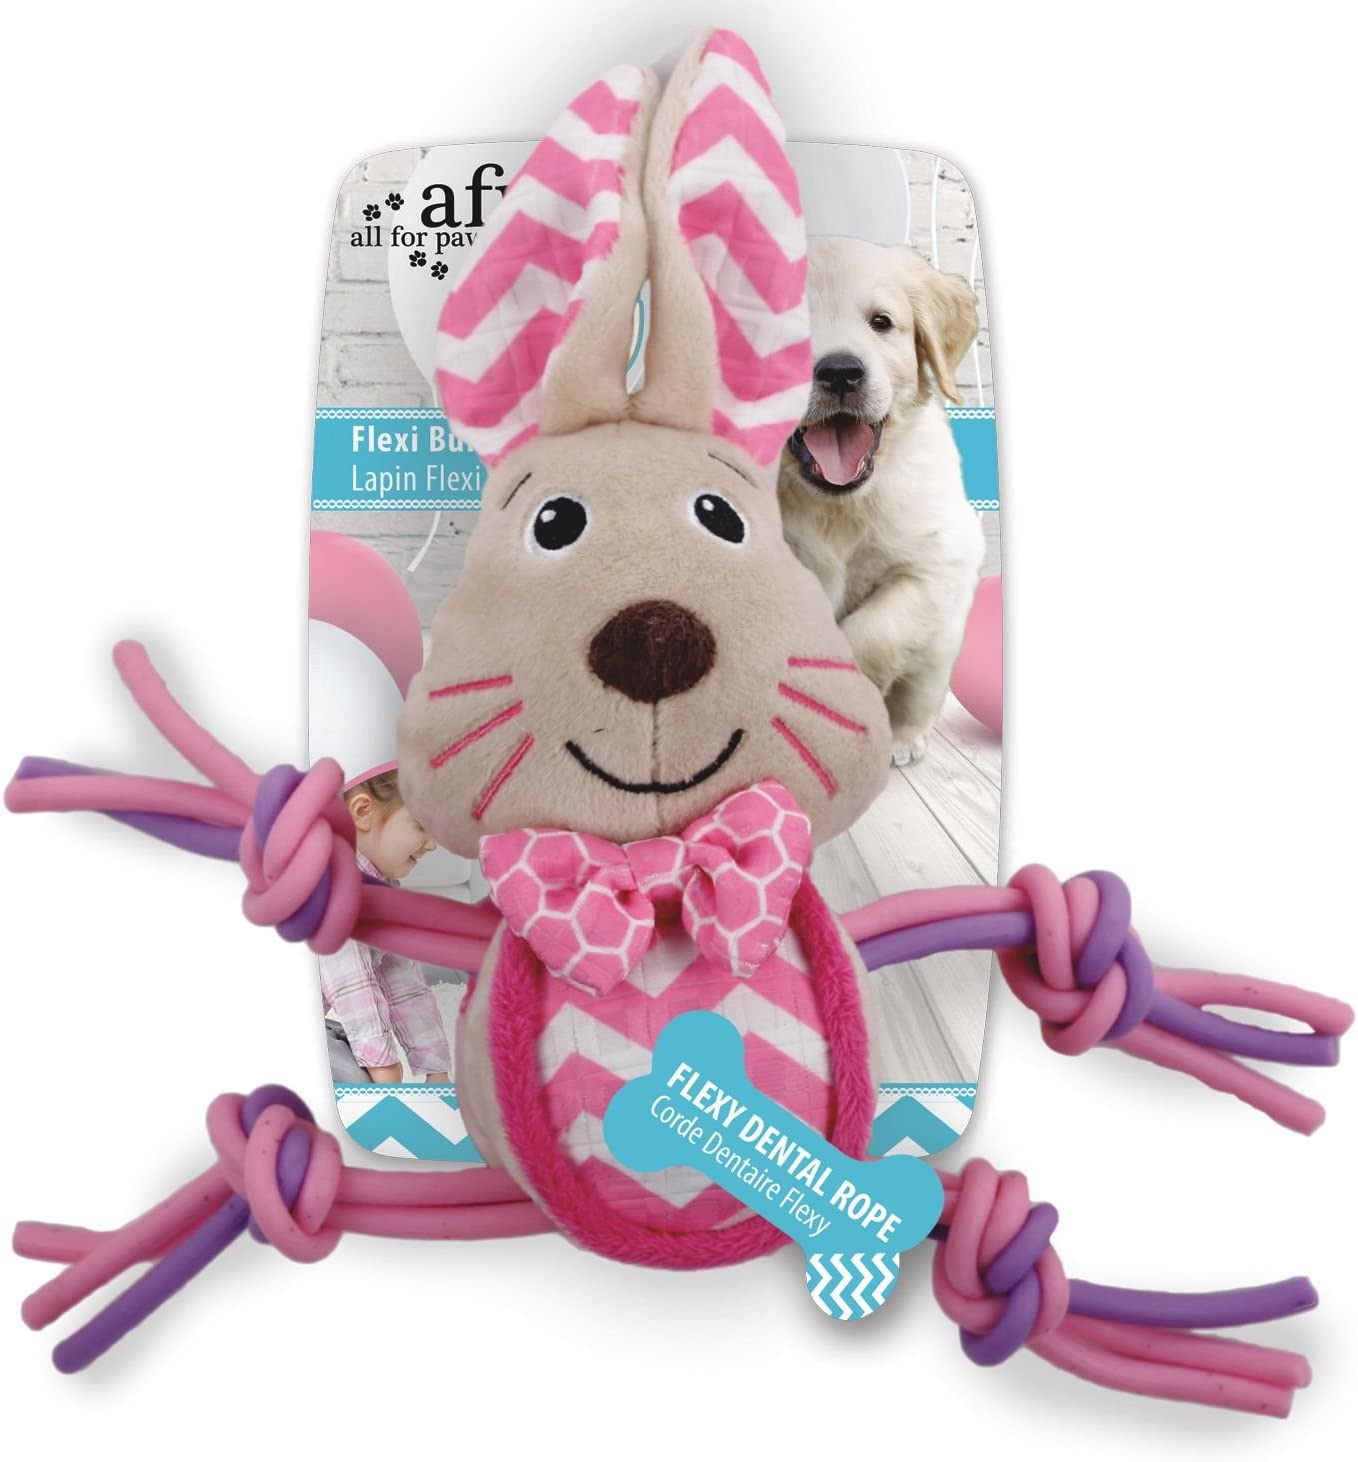 ALL FOR PAWS gift AFP4207 Little Puppy Buddy Rabbit Toy Max 54% OFF